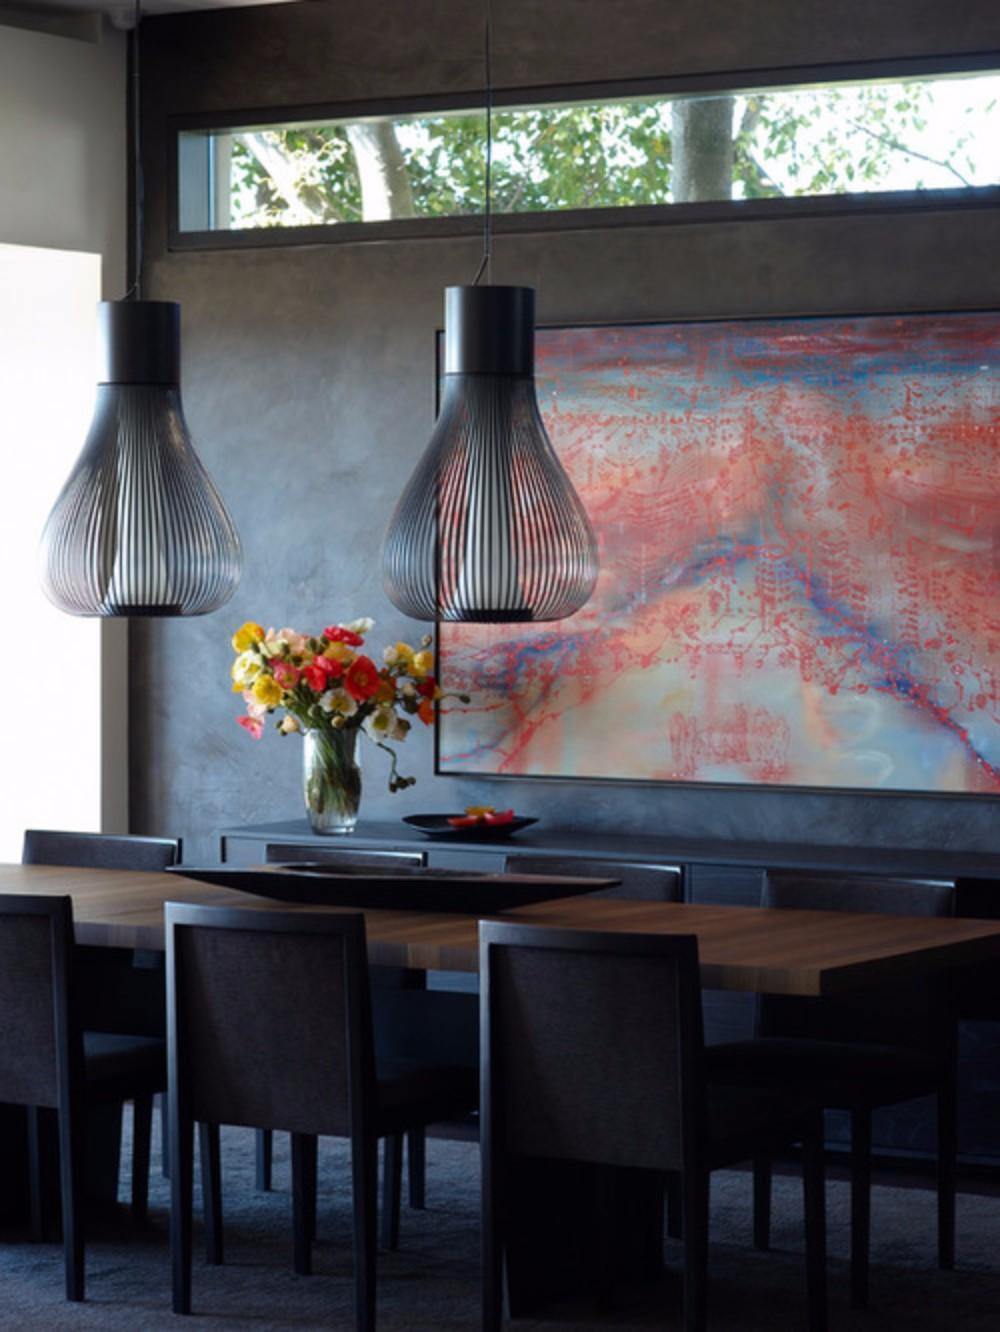 Patricia Urquiola Dining Room Projects by Patricia Urquiola d221103f03f15785 8330 w500 h666 b0 p0 contemporary dining room